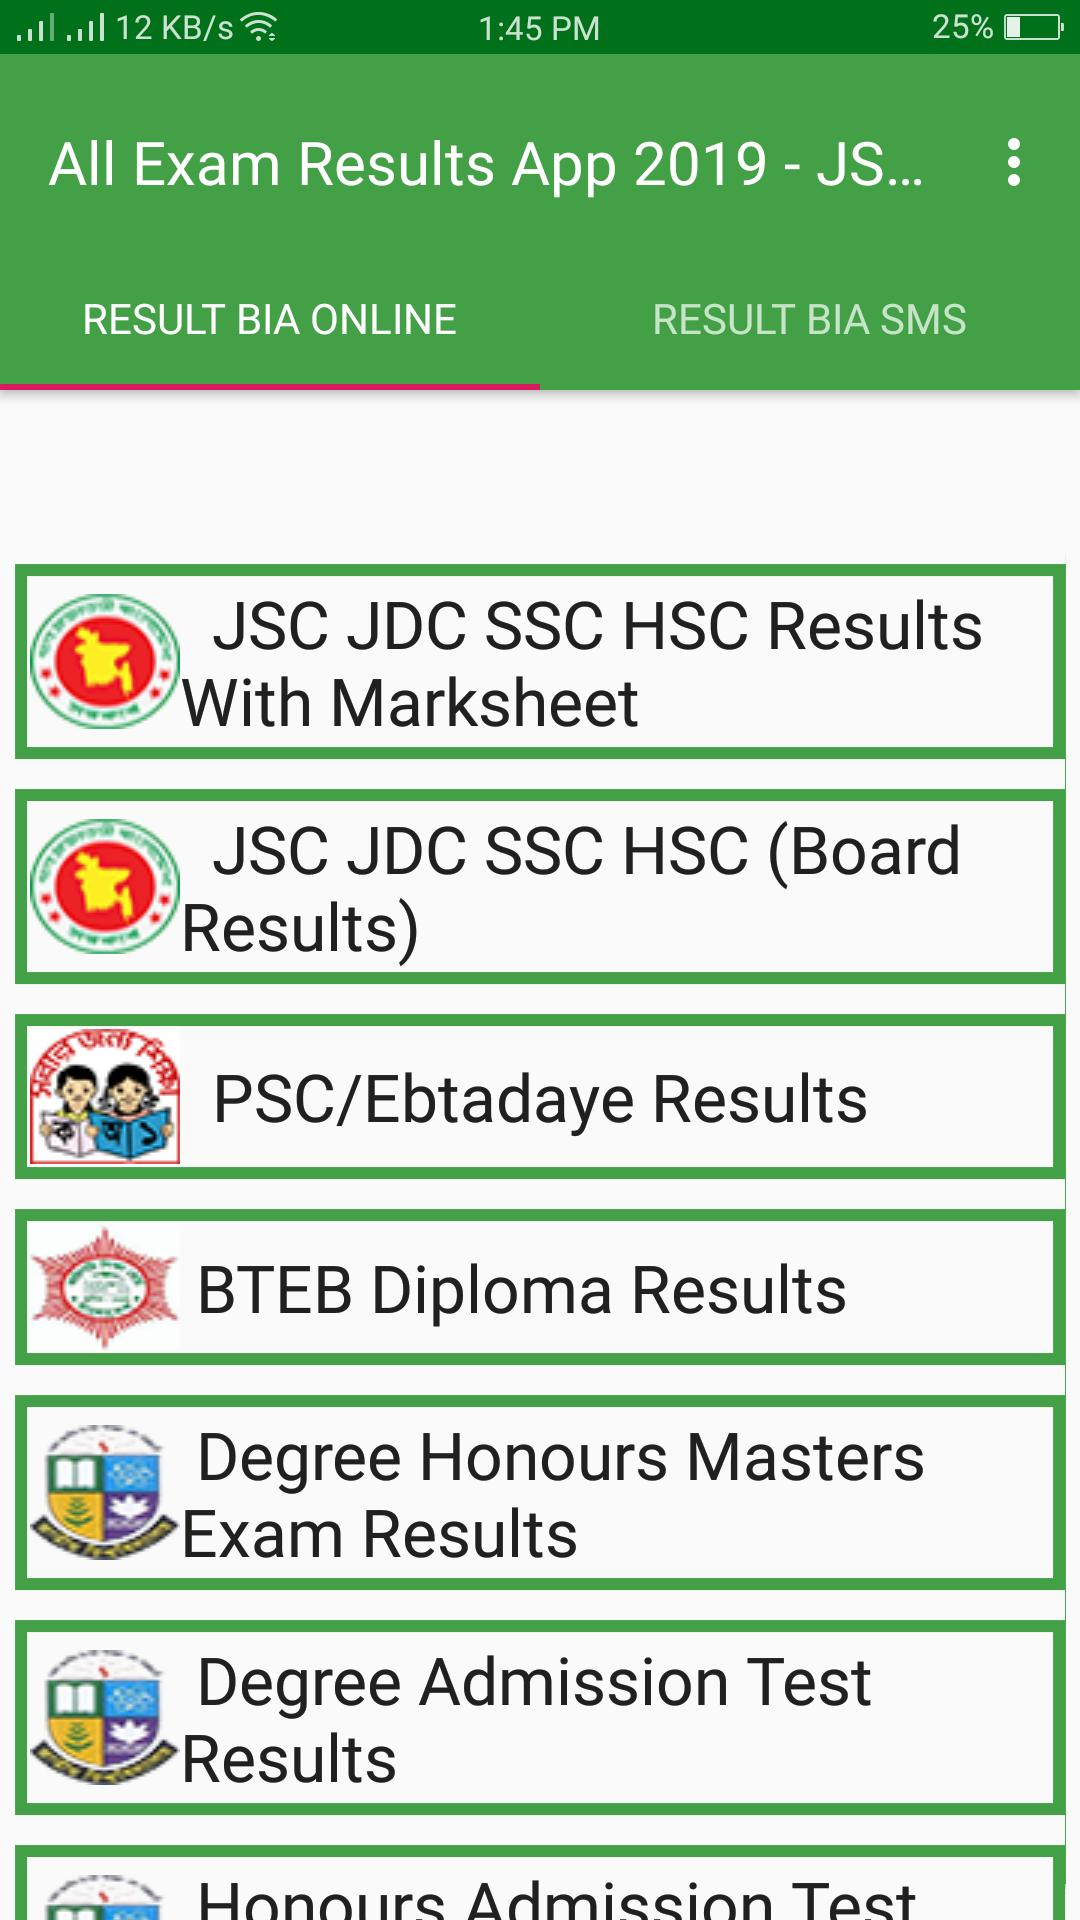 All Exam Results App 2019 - JSC SSC HSC NU for Android - APK